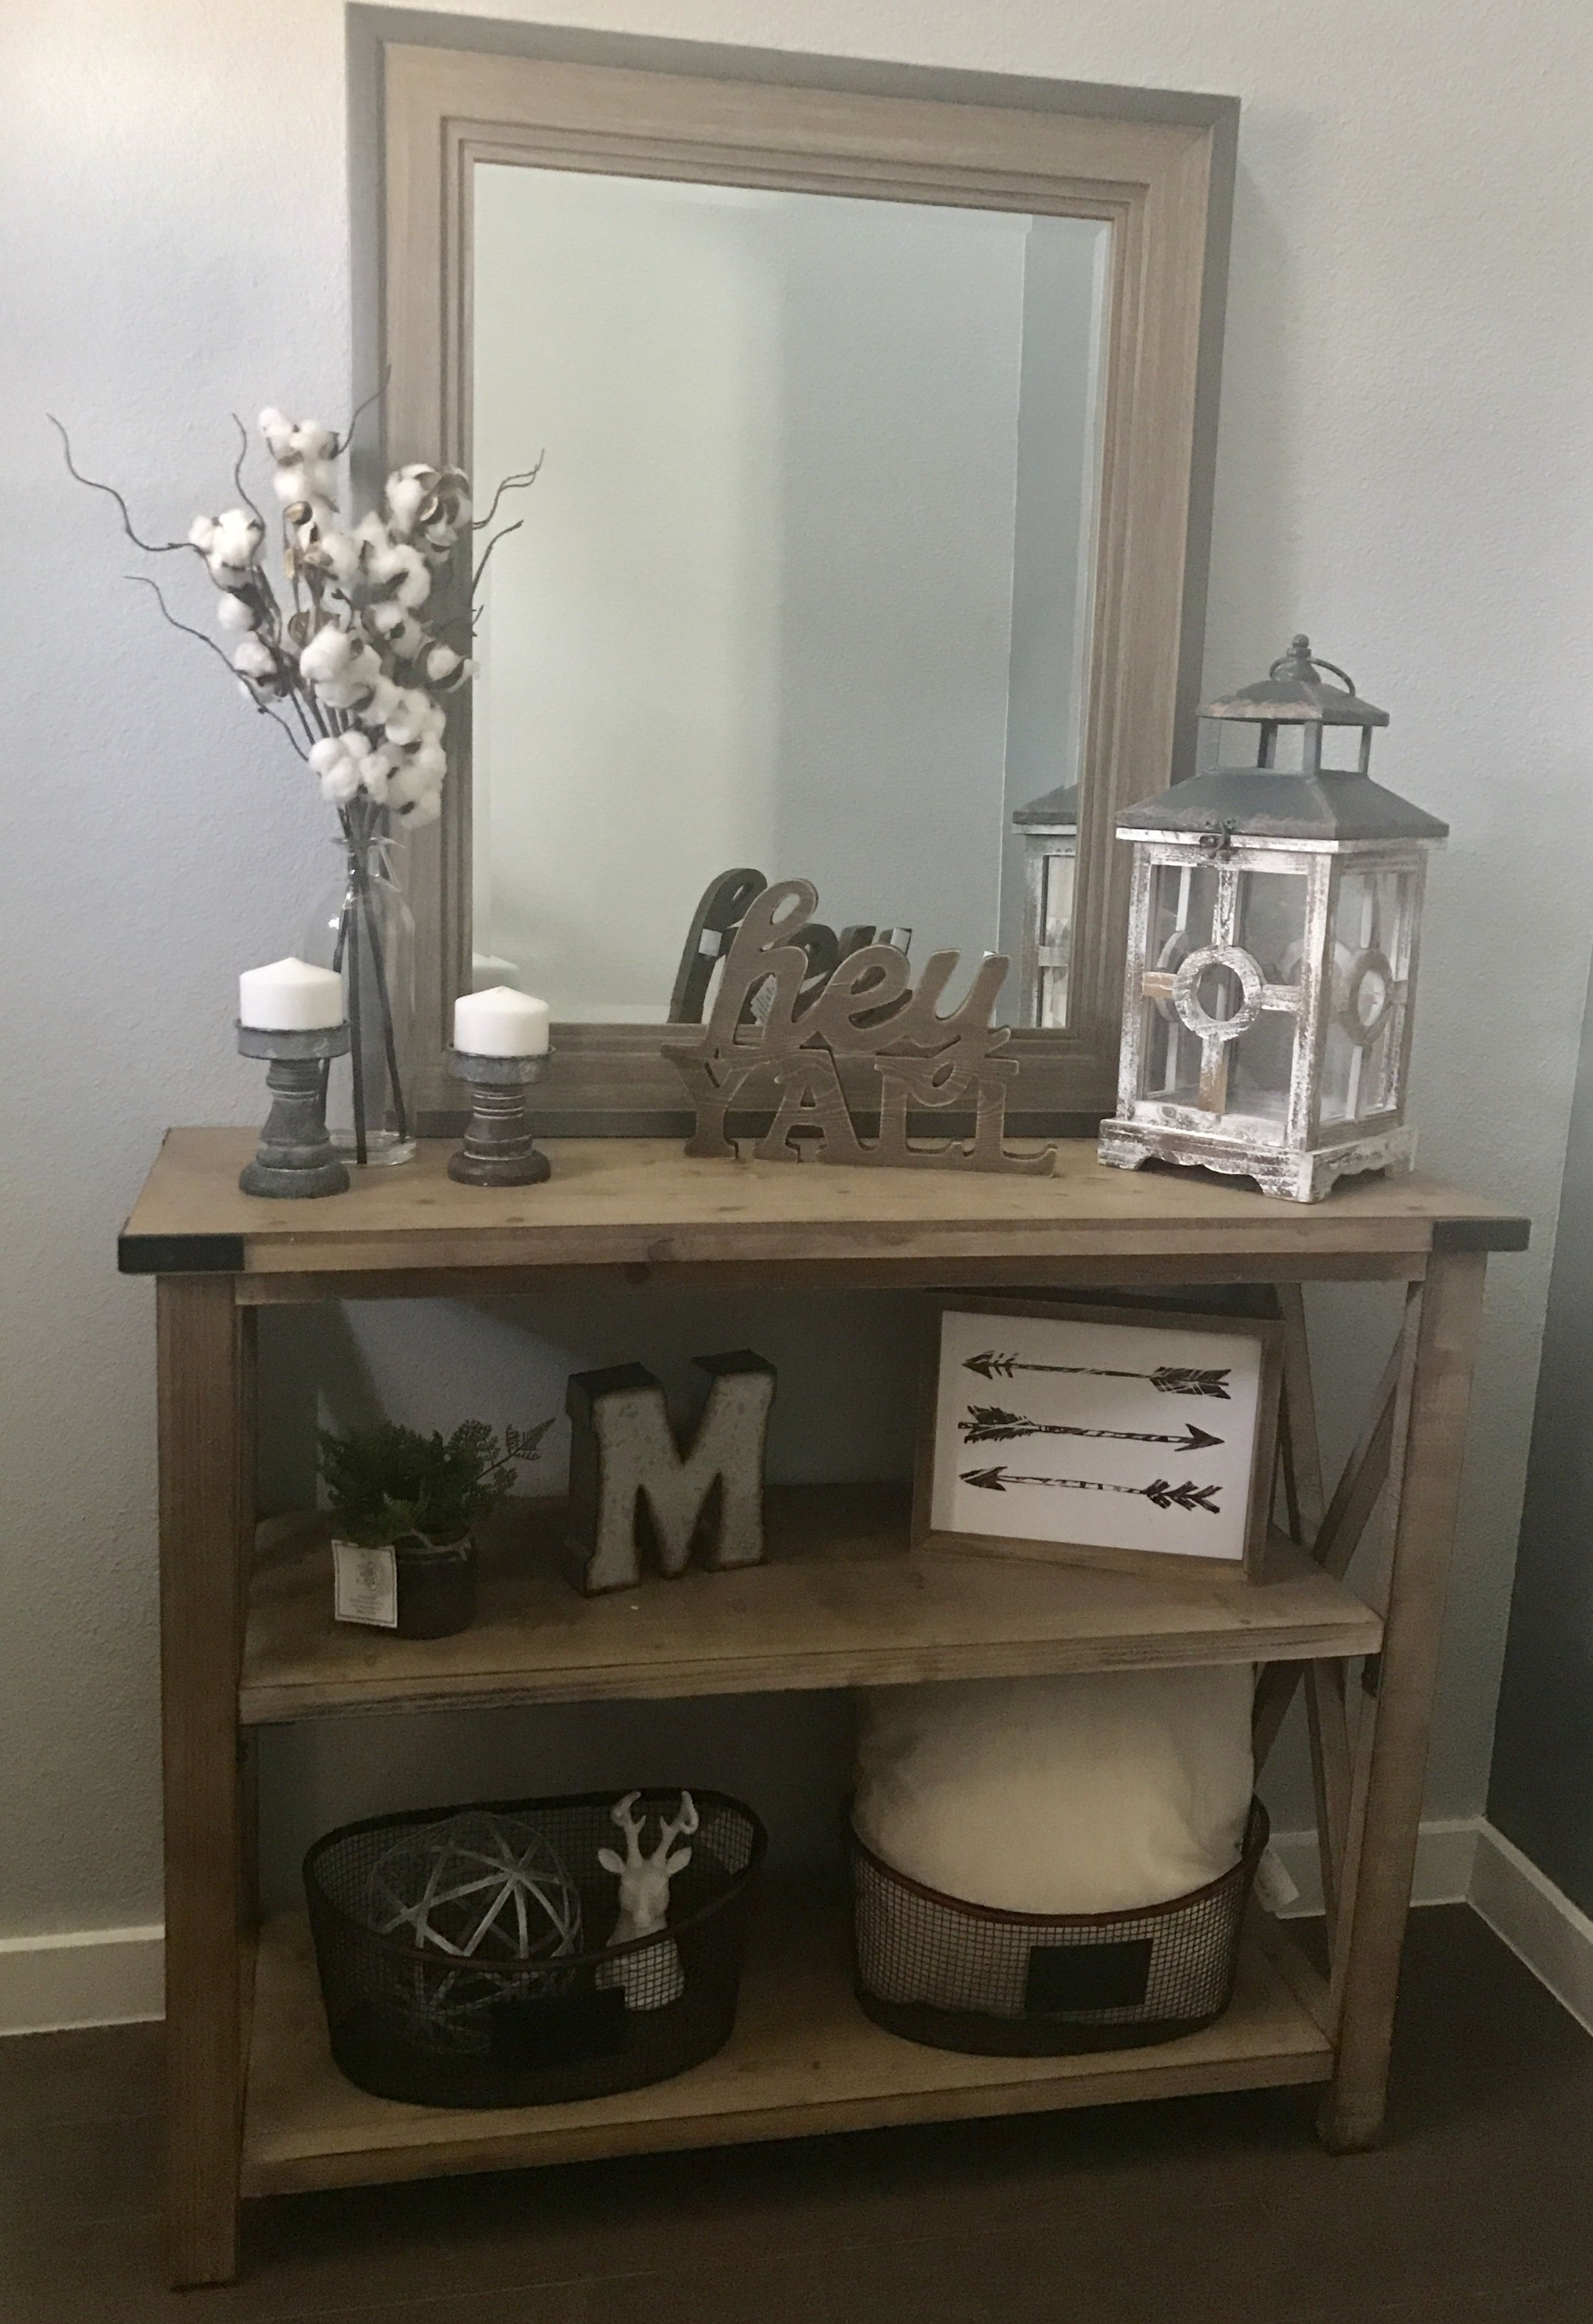 new modern farmhouse entry way console table decor mcmillen home small accent teak side outdoor white wicker furniture brown dining chairs pottery barn entrance cocktail tables